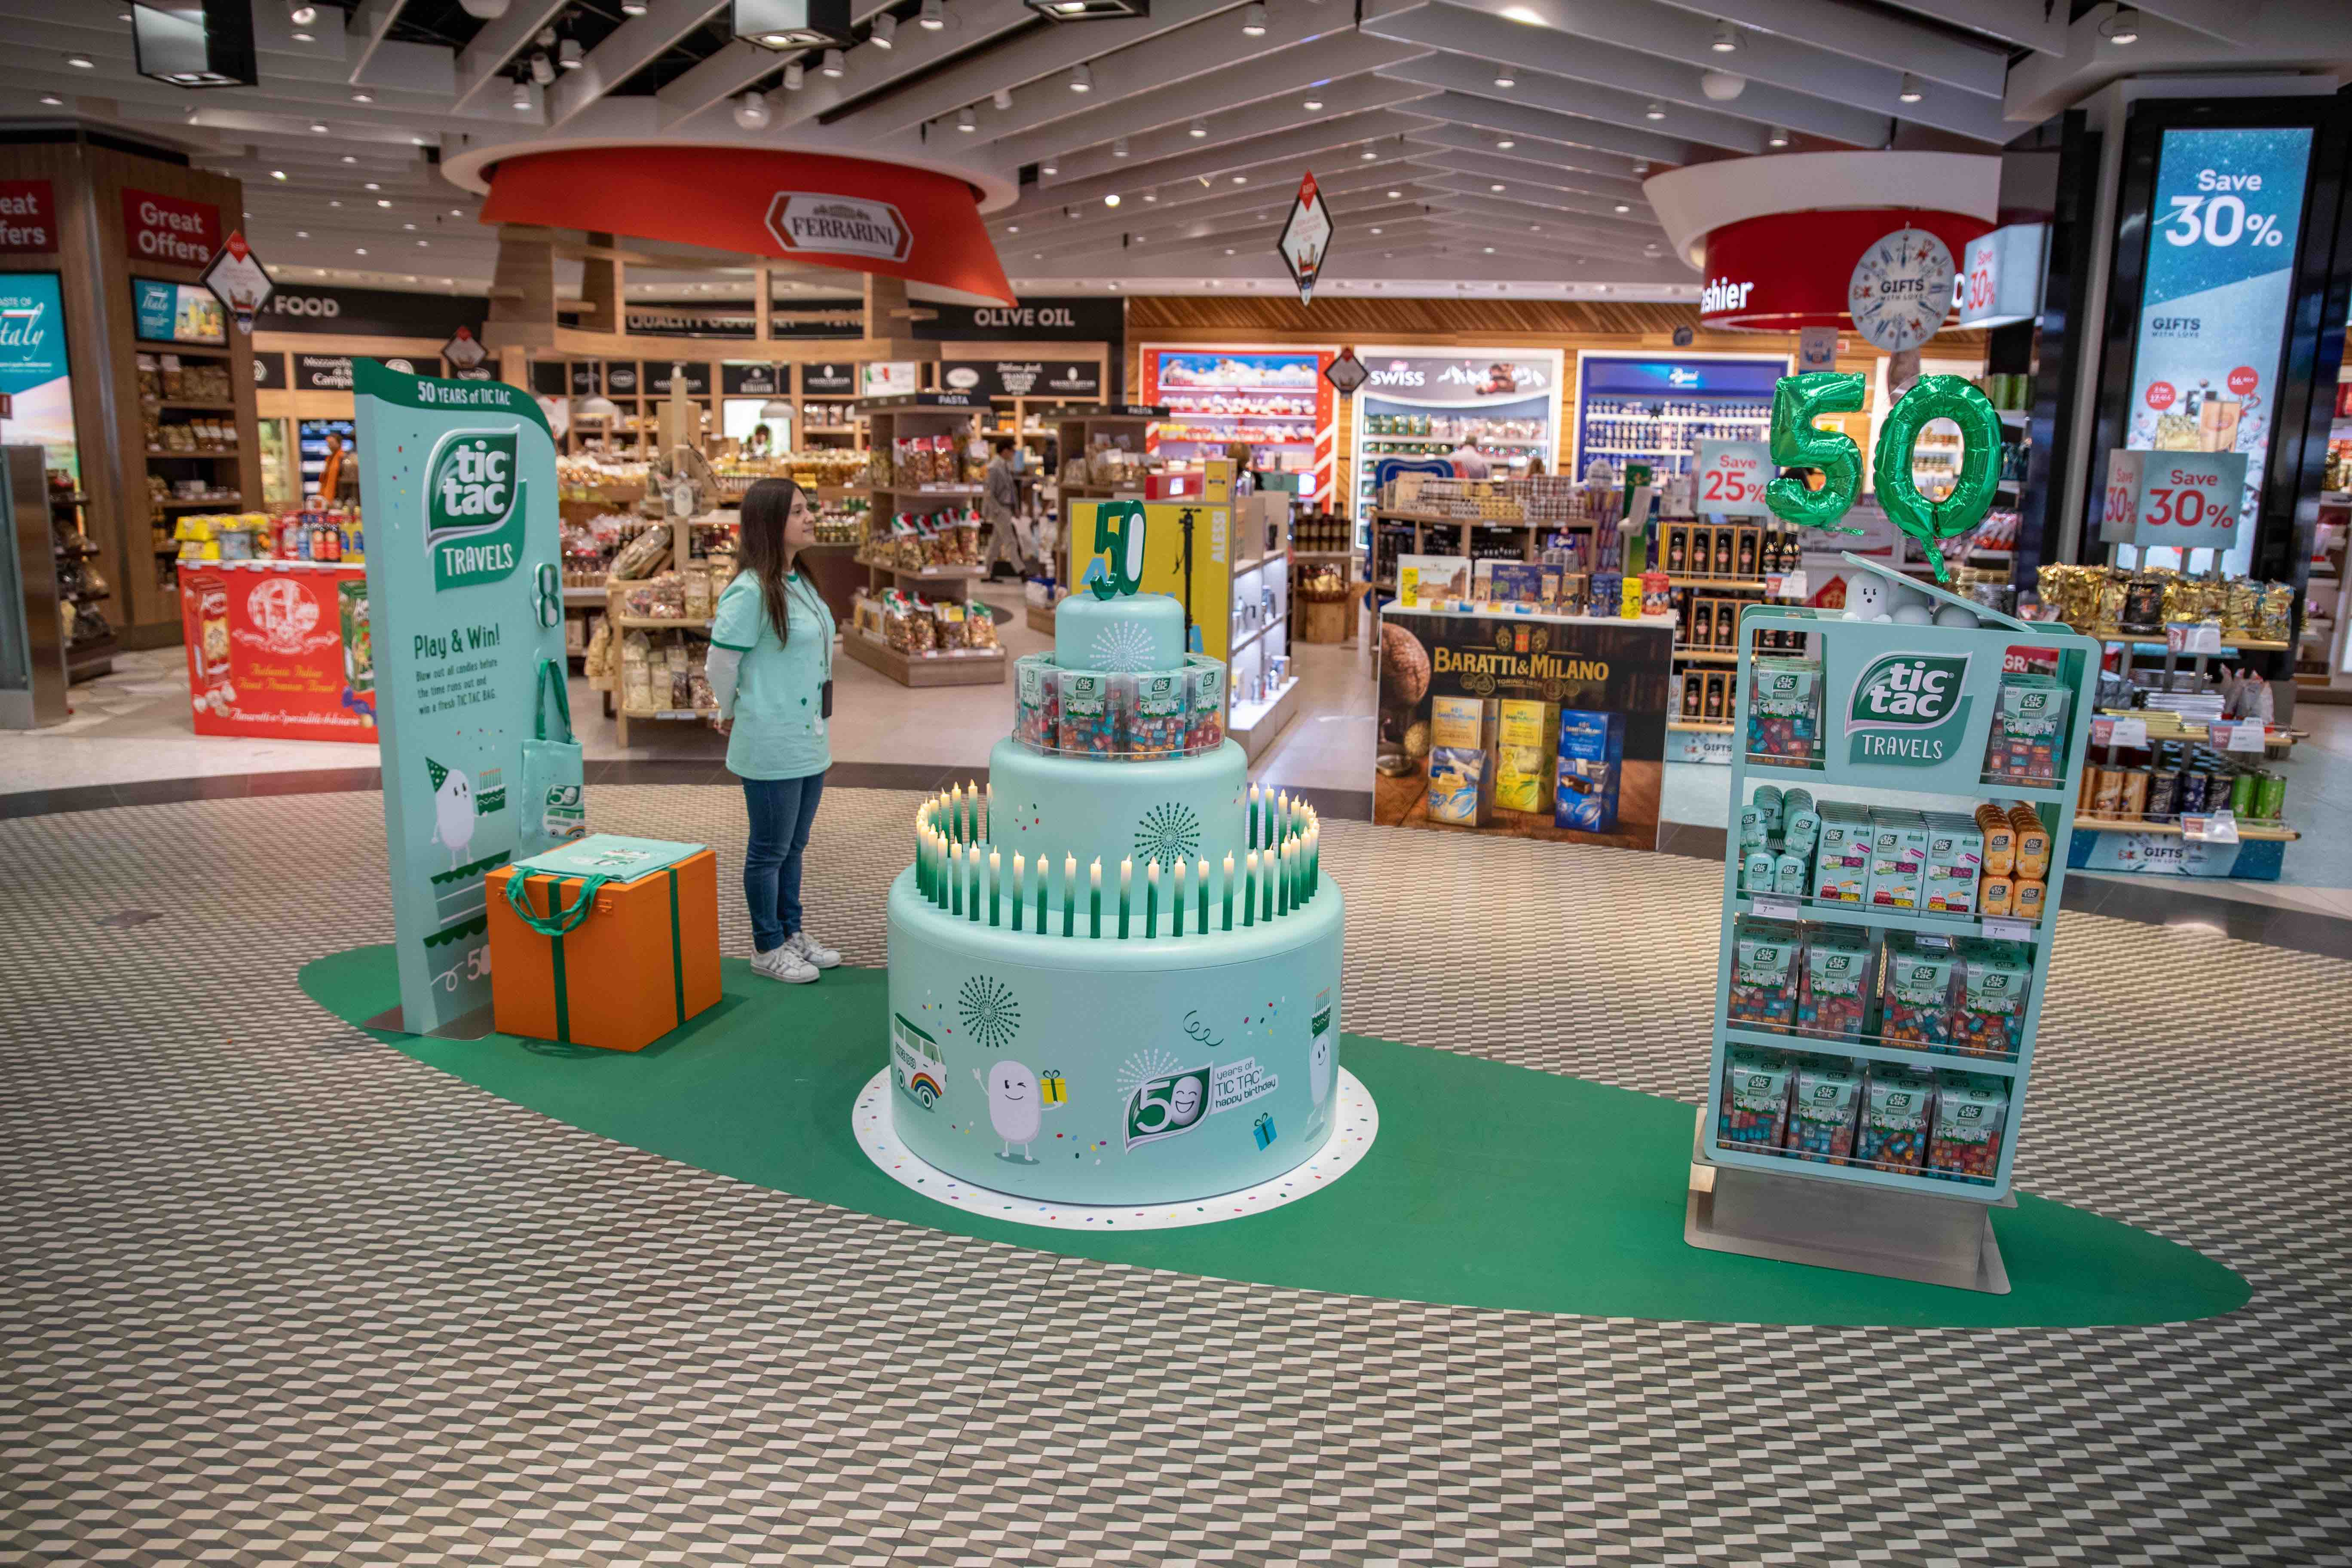 Tictac Travels 50th anniversary promotional stand